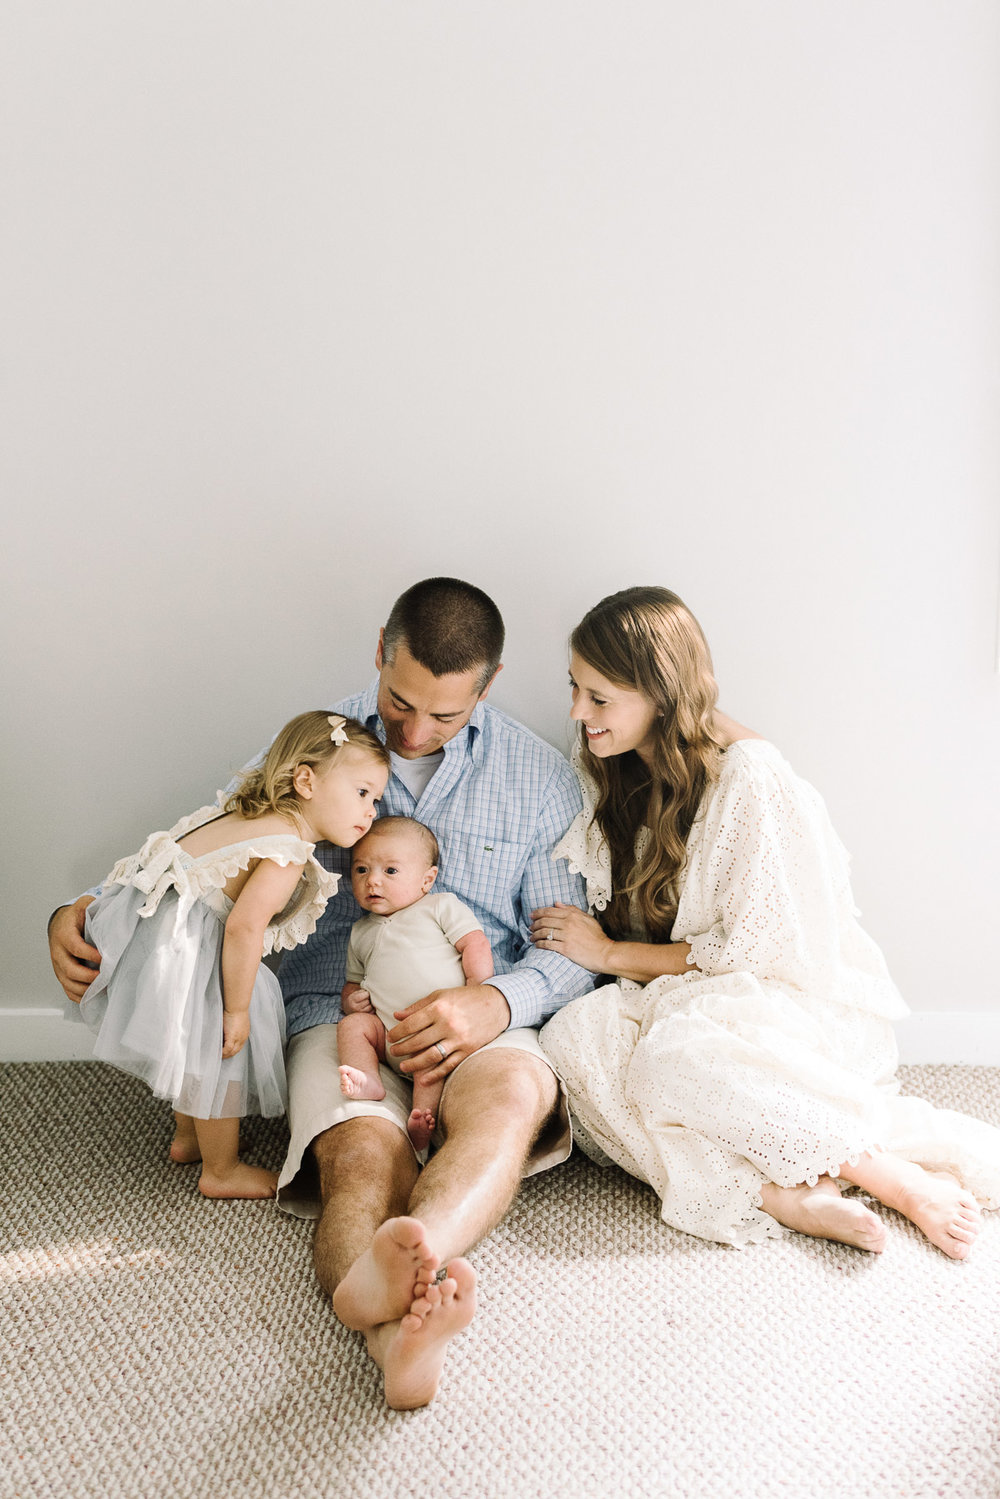 NJ and NY In-home newborn and family photography